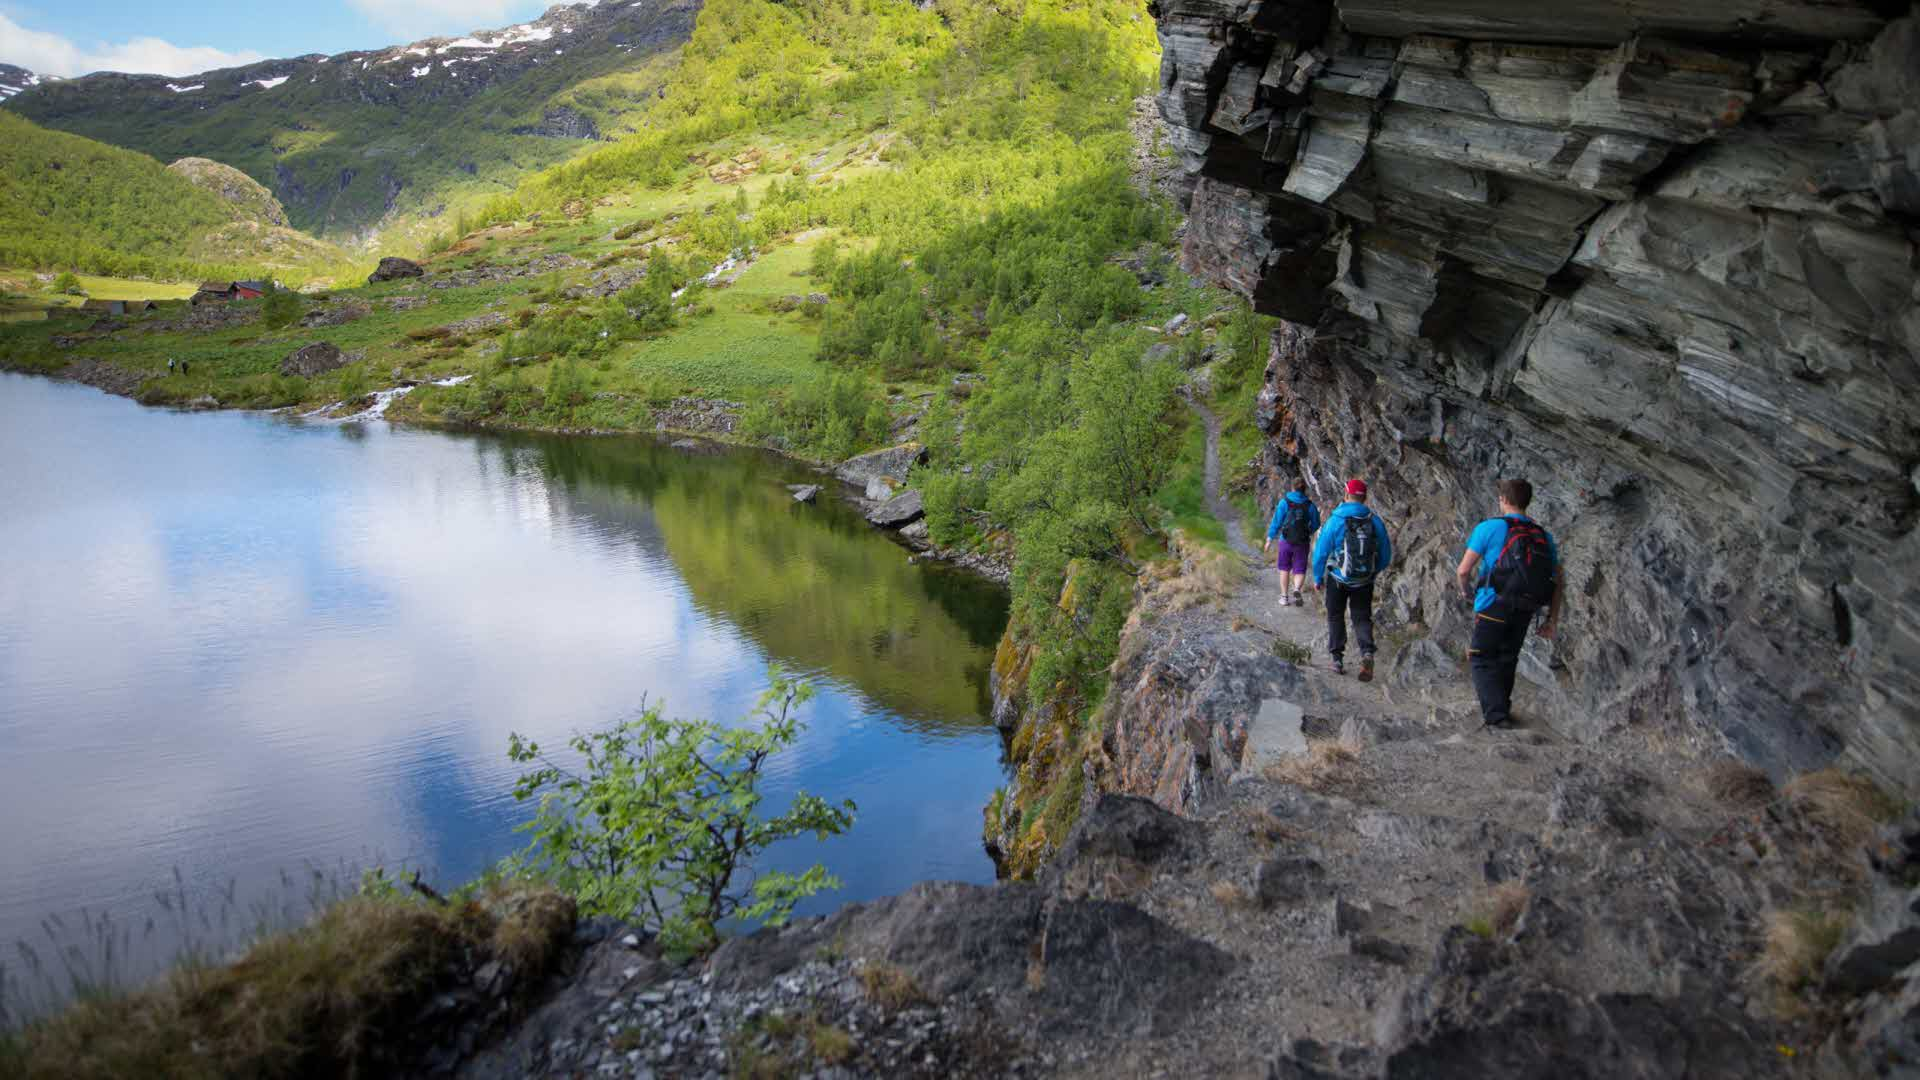 3 people hiking along steep and rocky ledge through Aurland valley with backdrop of lake